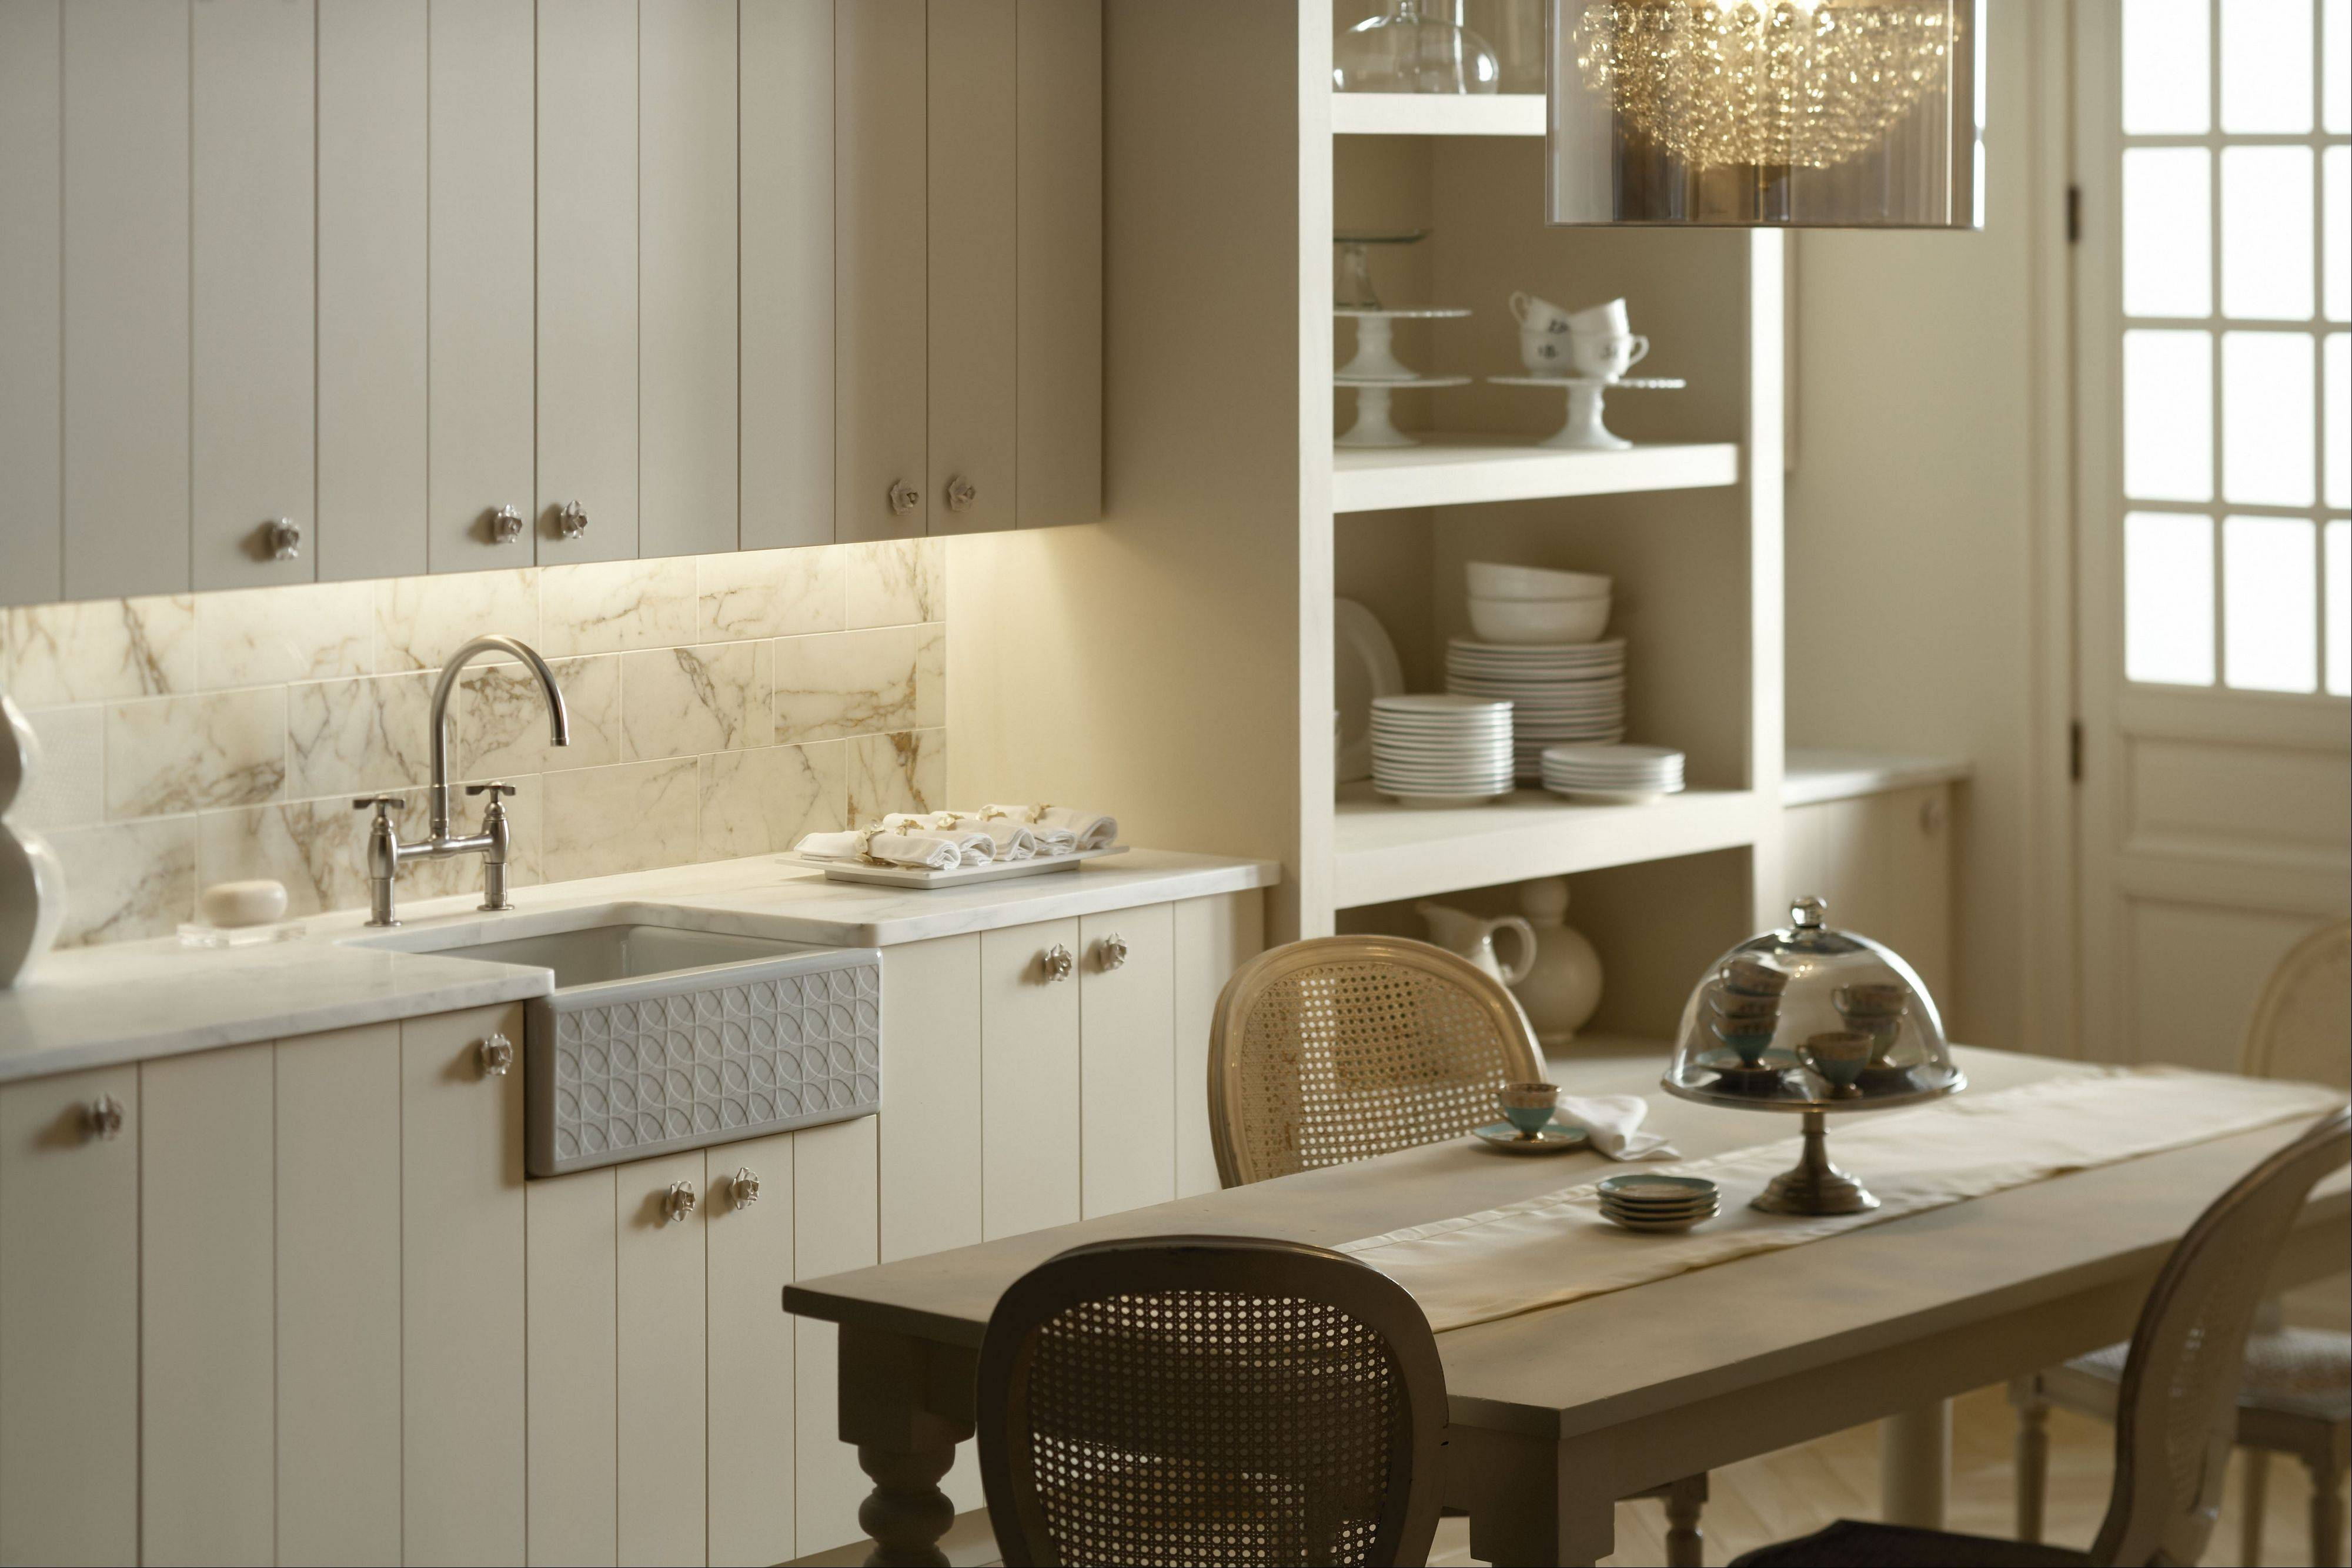 Farmhouse kitchens balance rustic style with modern function